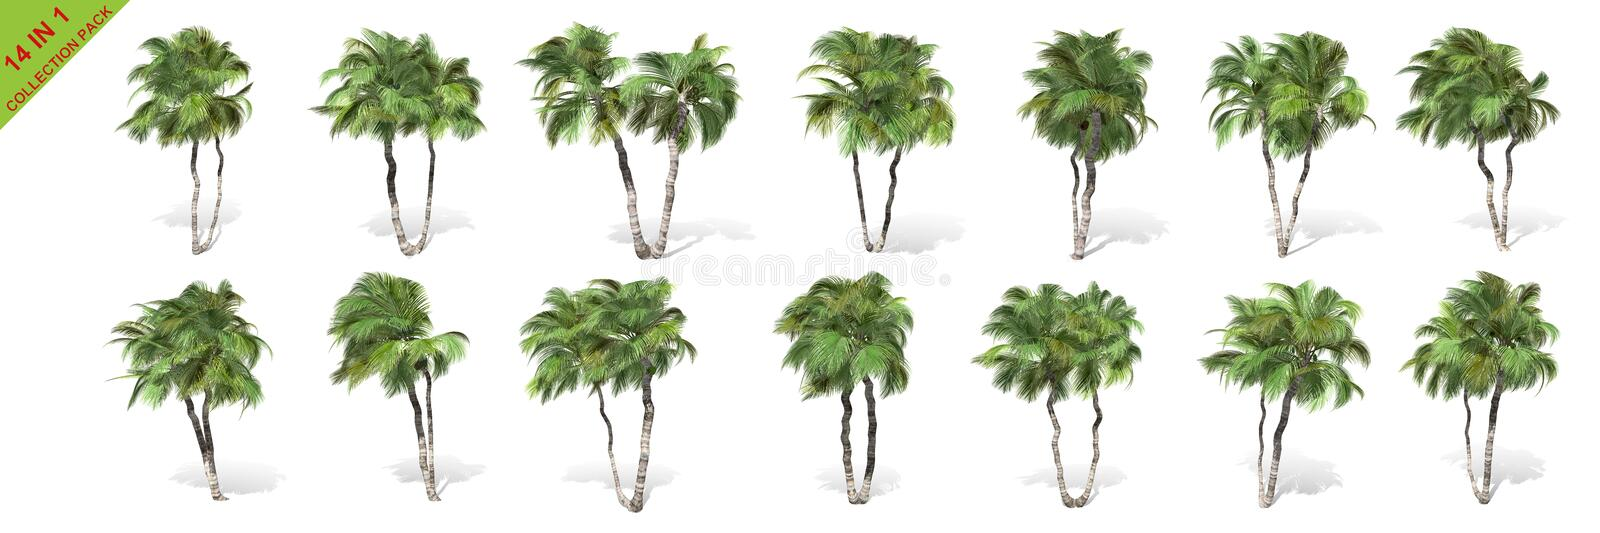 3D rendering - 14 in 1 collection of tall coconut trees isolated over a white background. Use for natural poster or wallpaper design, 3D illustration Design stock illustration